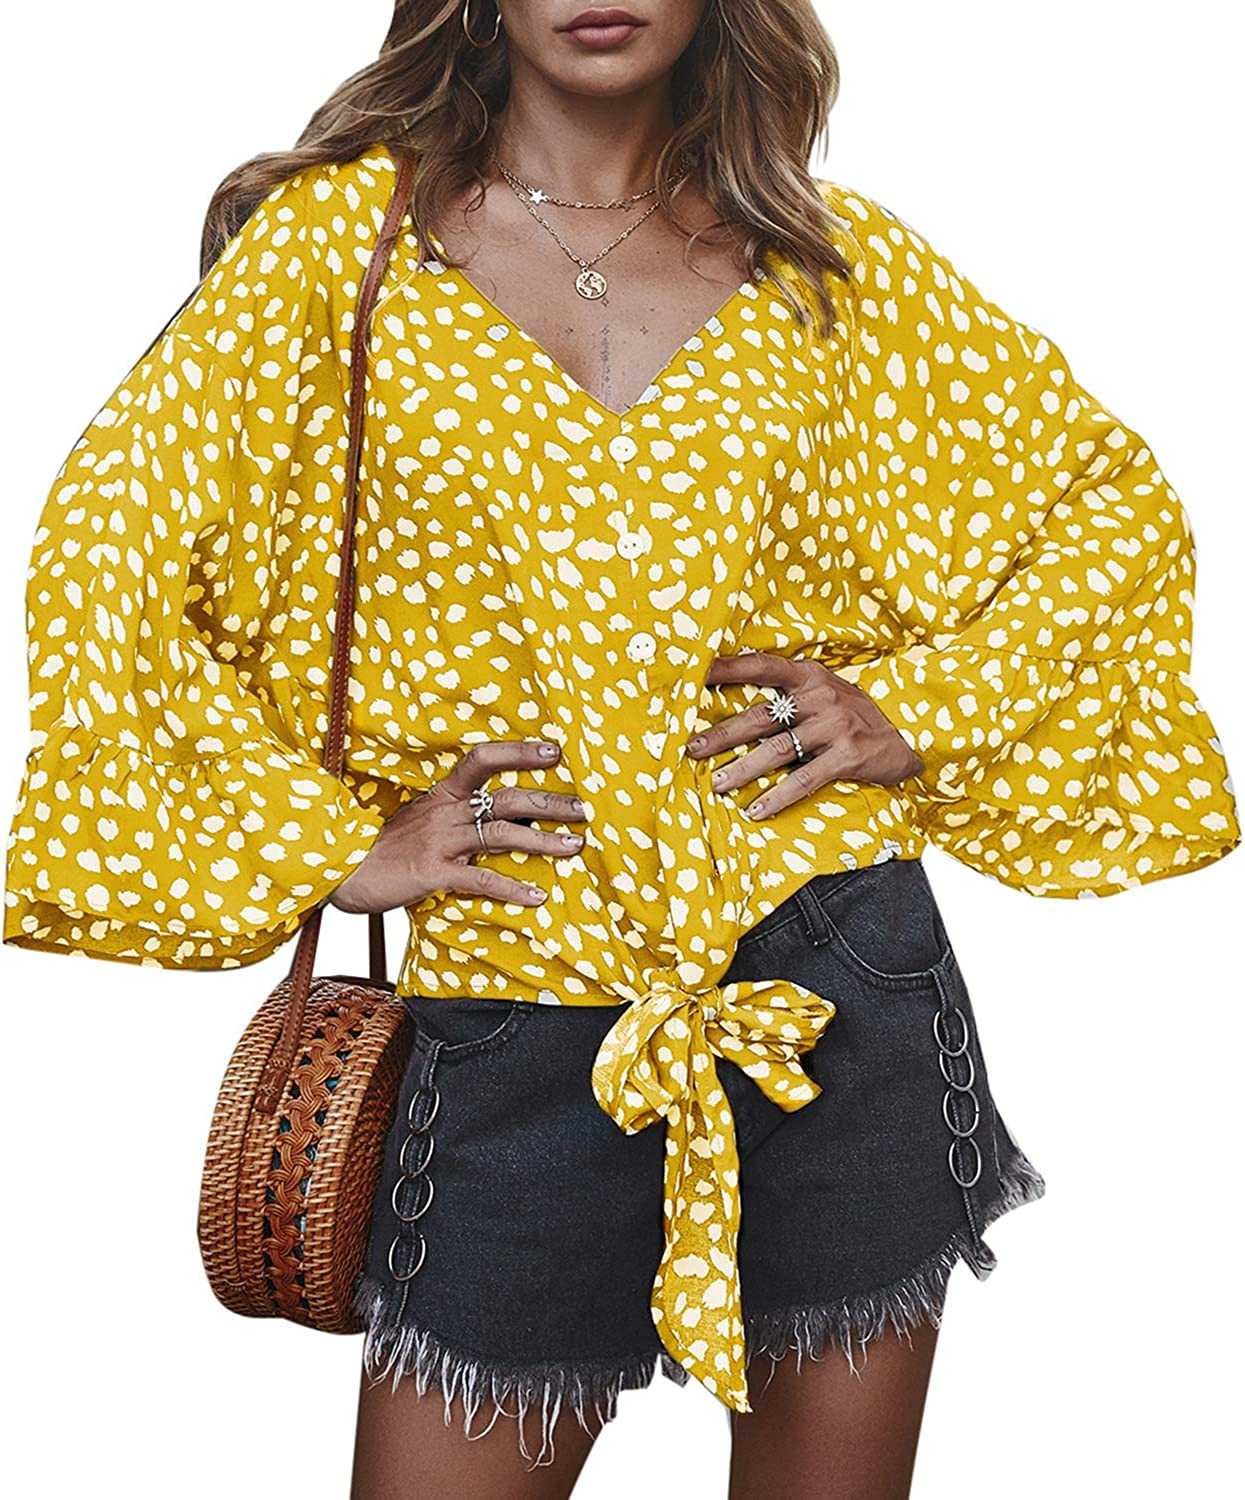 PERSUN Women's Long Sleeve V Neck Button Down Blouses Polka Dot Tie Knot Shirts Tops